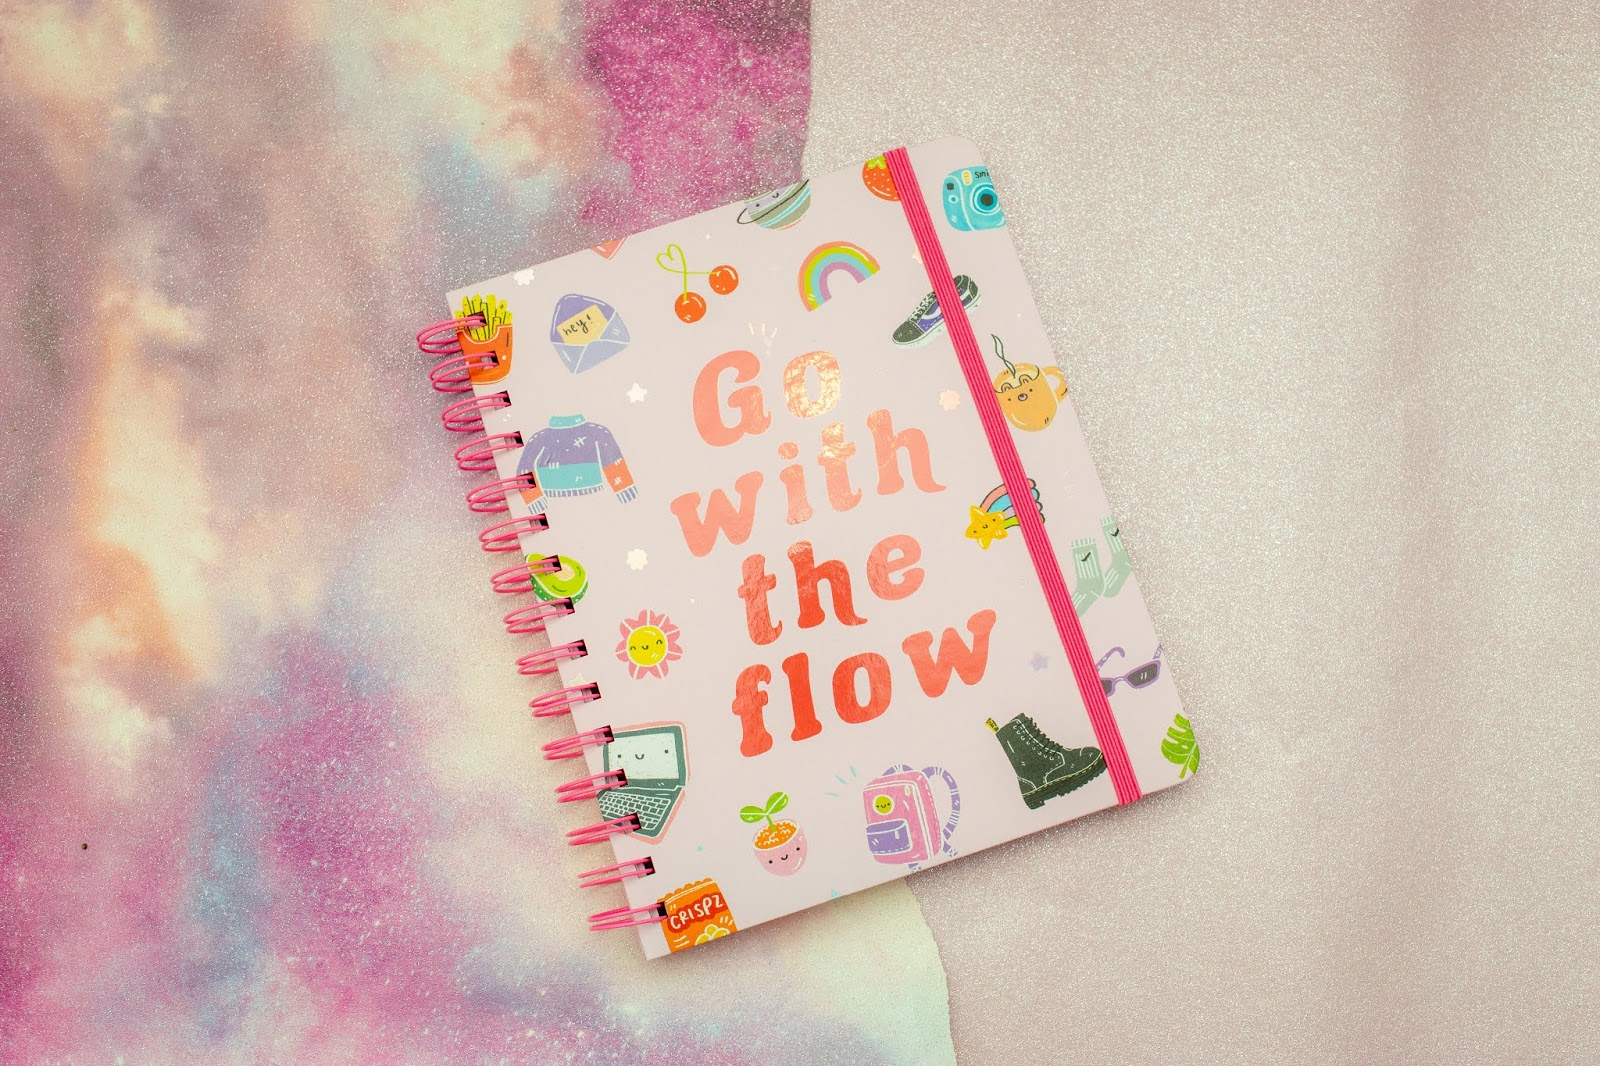 A spiral bound notebook with doodles on the front cover and the phrase: 'go with the flow' on the front in red letters.